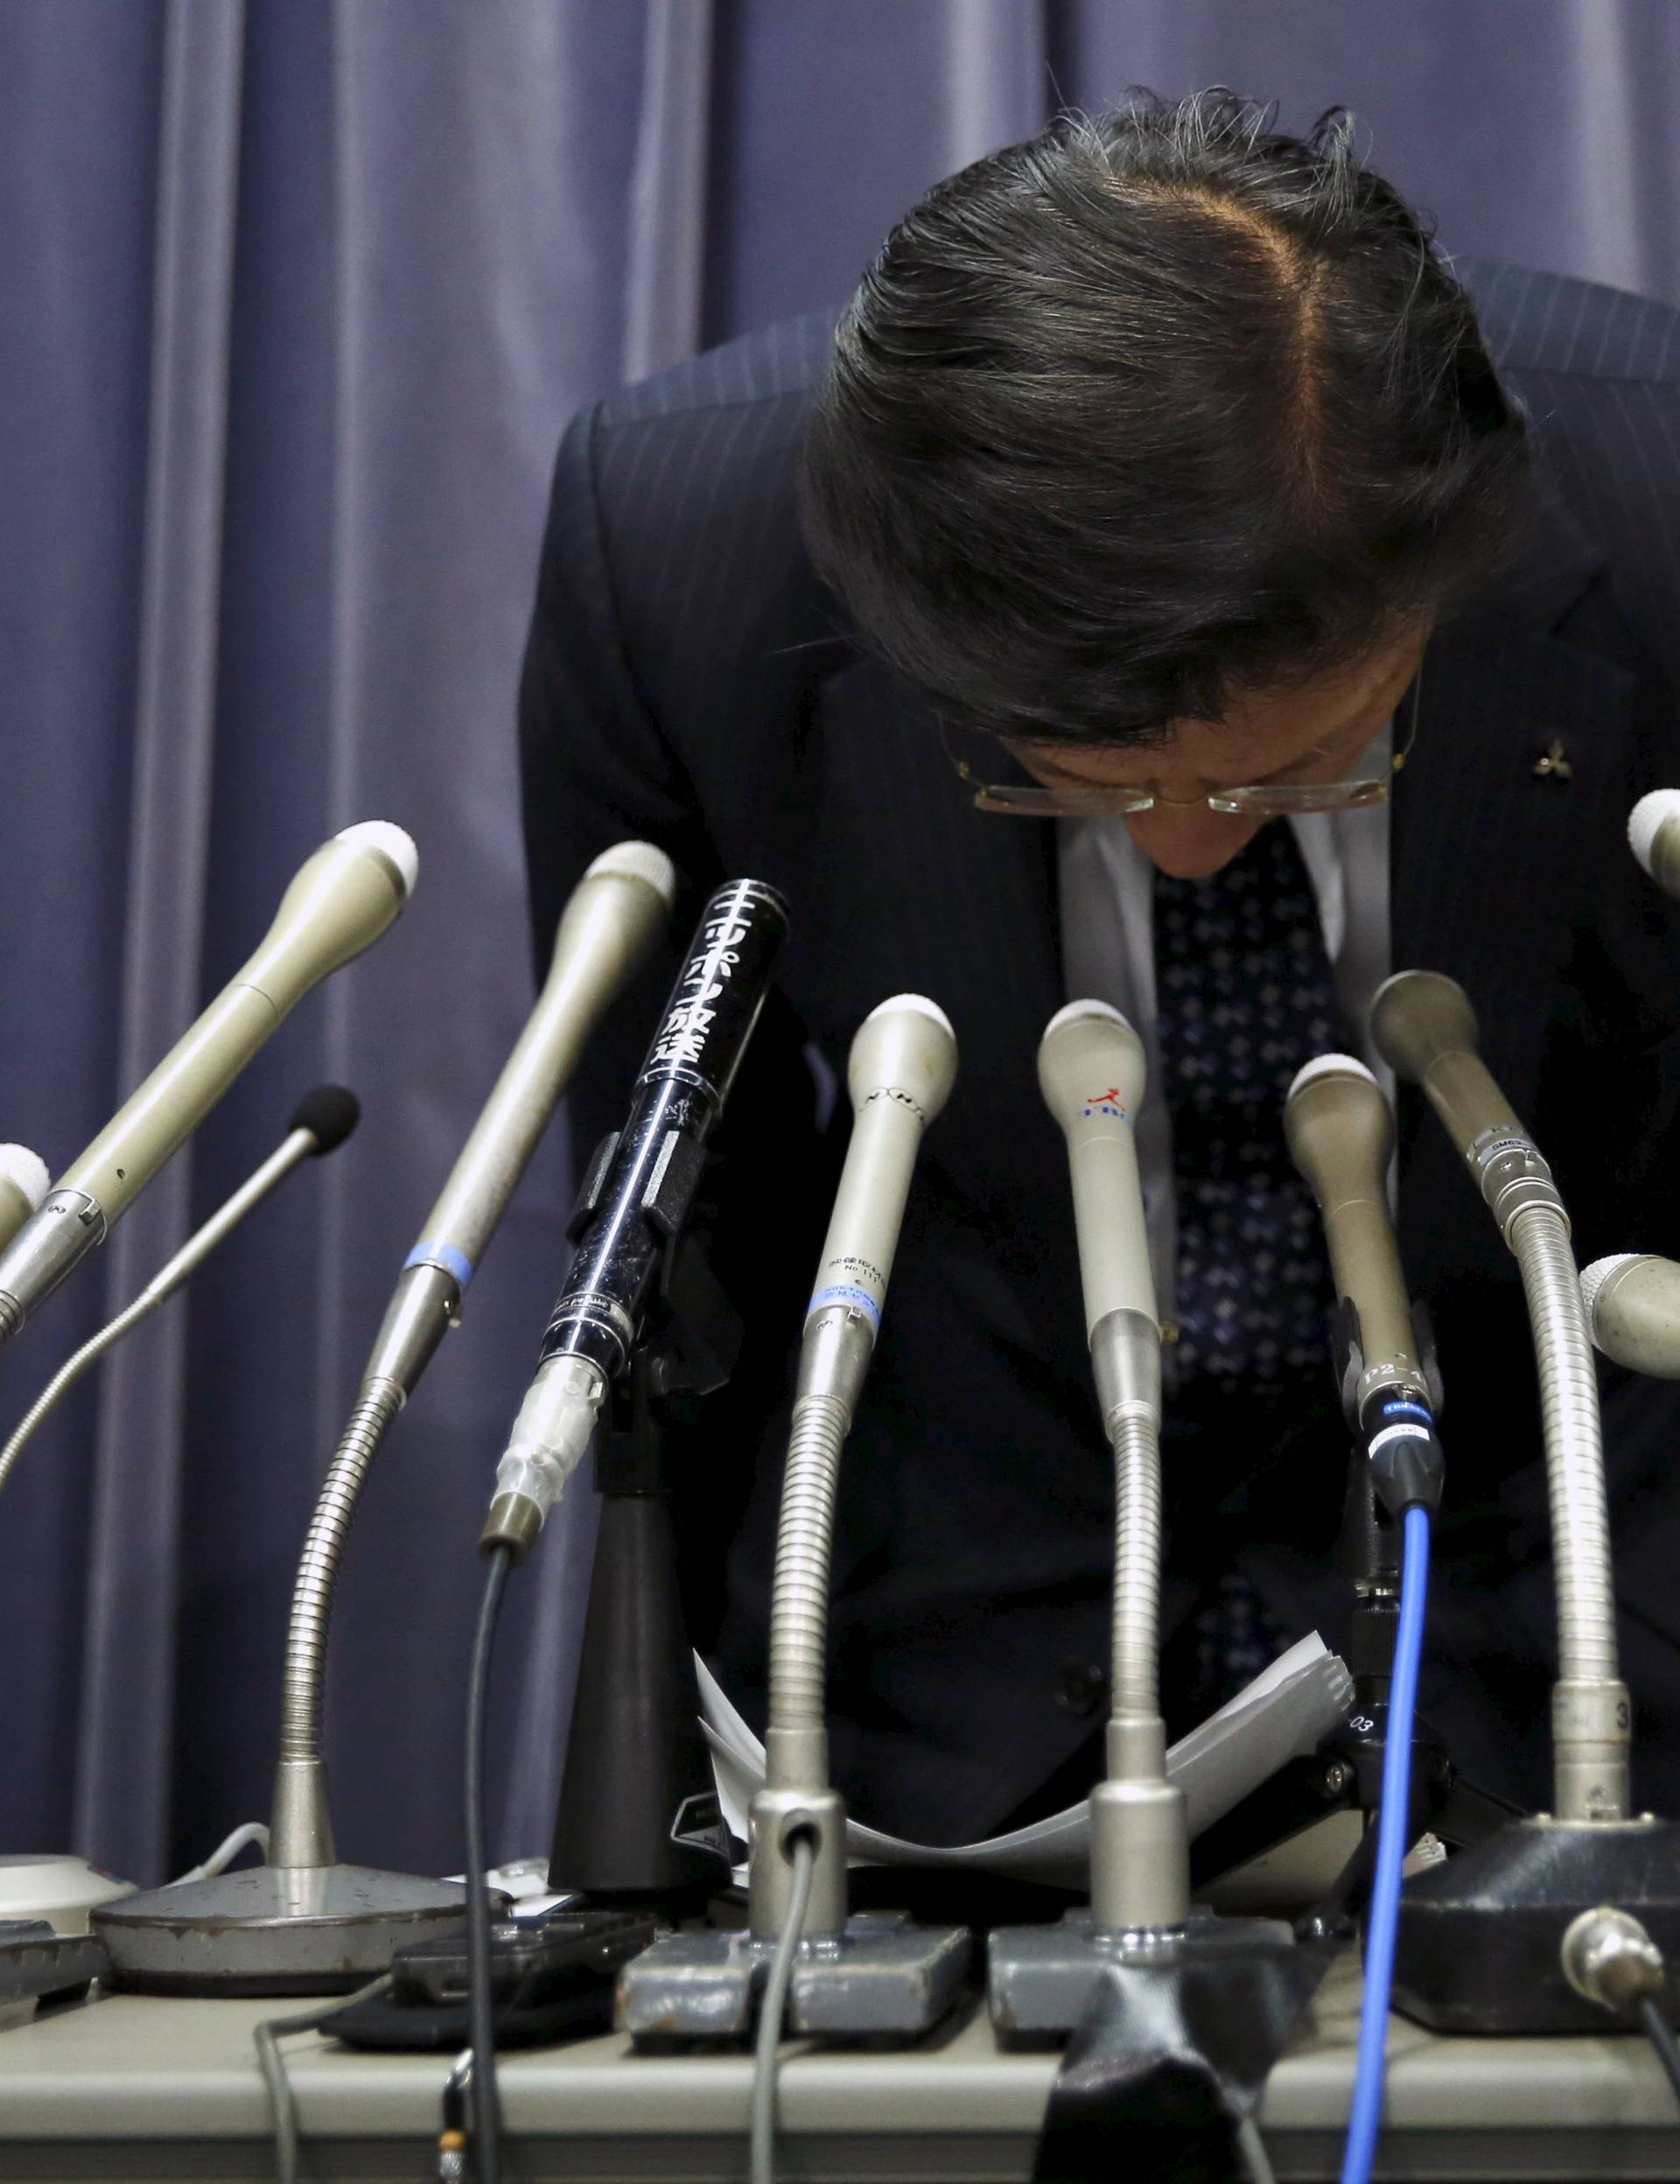 Mitsubishi Motors Corp's President Tetsuro Aikawa bows as he leaves a news conference to brief about issues of misconduct in fuel economy tests at the Land, Infrastructure, Transport and Tourism Ministry in Tokyo